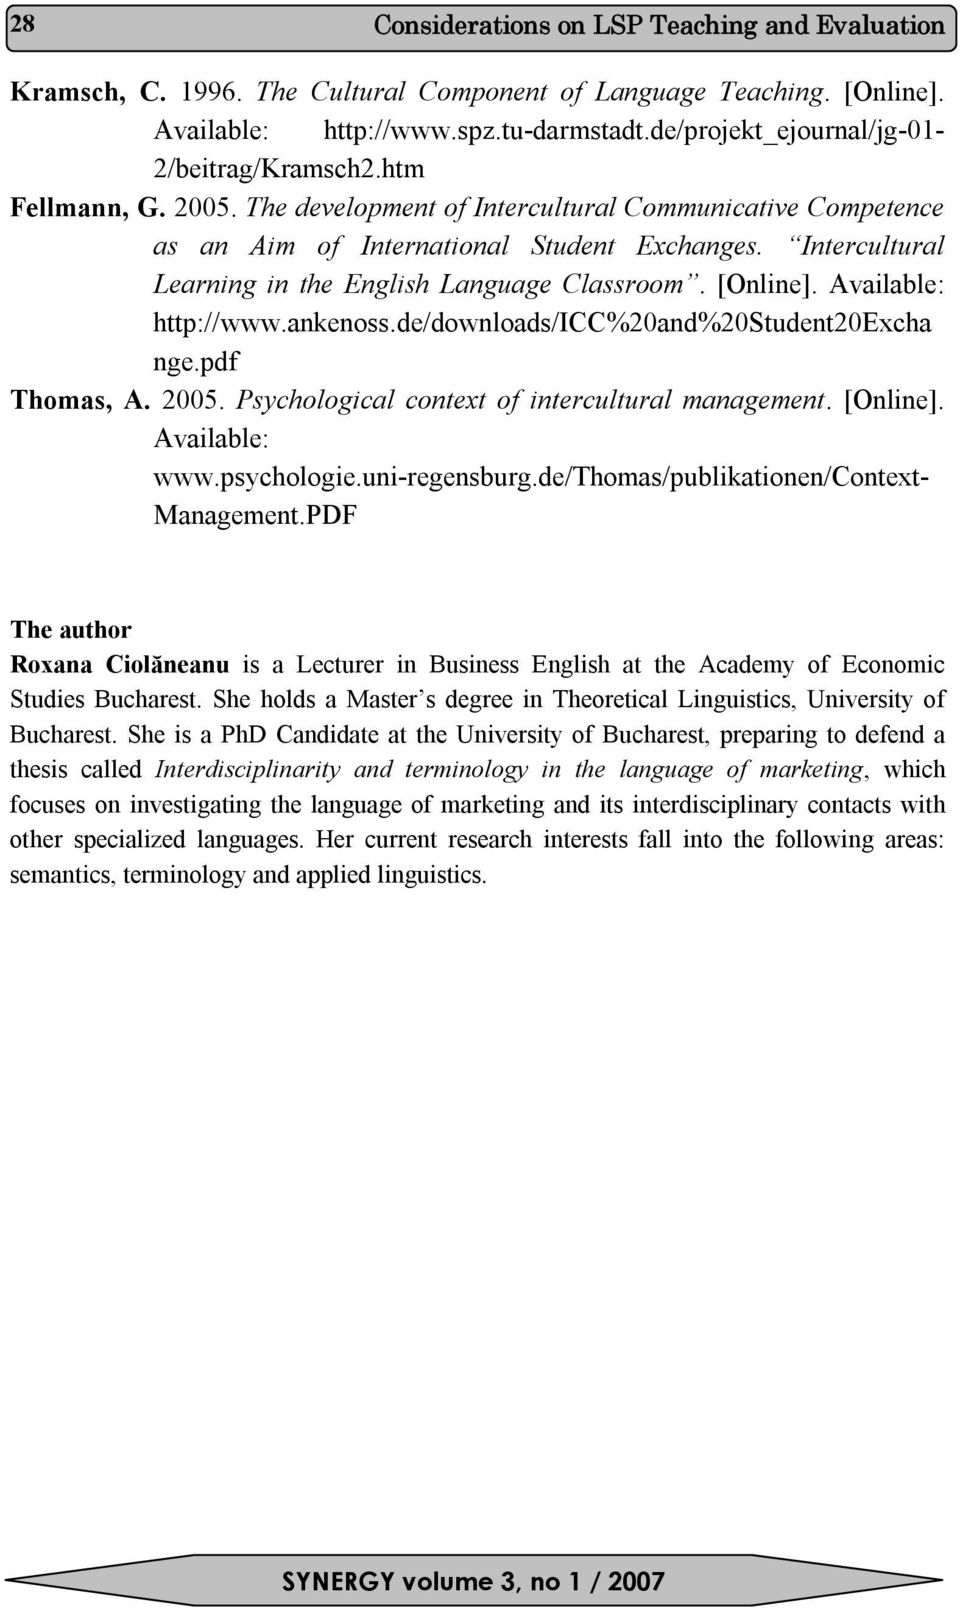 ankenoss.de/downloads/icc%20and%20student20excha nge.pdf Thomas, A. 2005. Psychological context of intercultural management. [Online]. Available: www.psychologie.uni-regensburg.